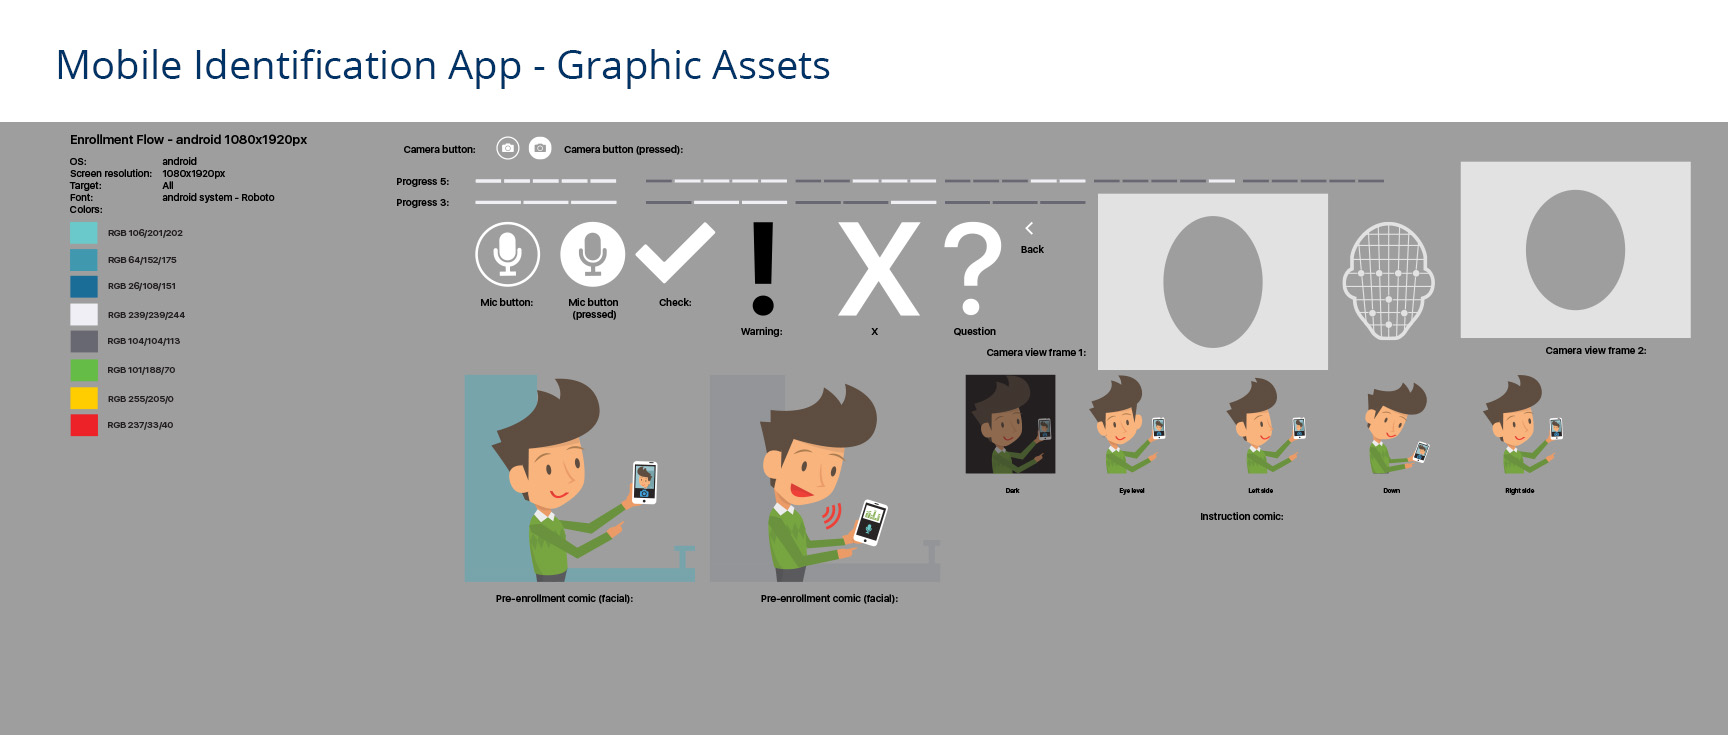 Assets used for UI for mobile identification app